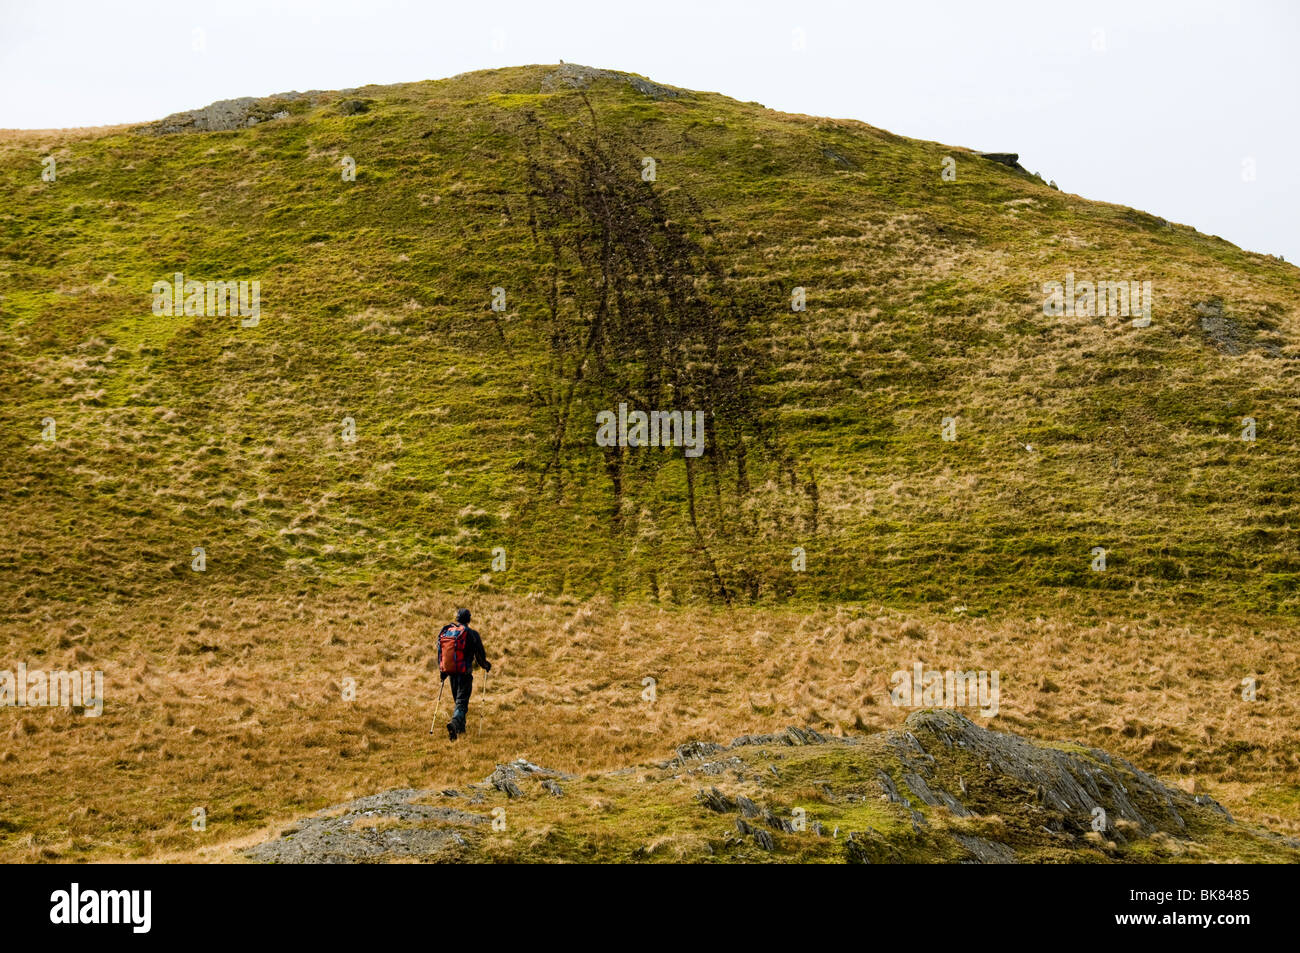 Environmental damage caused by off-road bikers, in the Moelwyn hills, Snowdonia, North Wales, UK - Stock Image